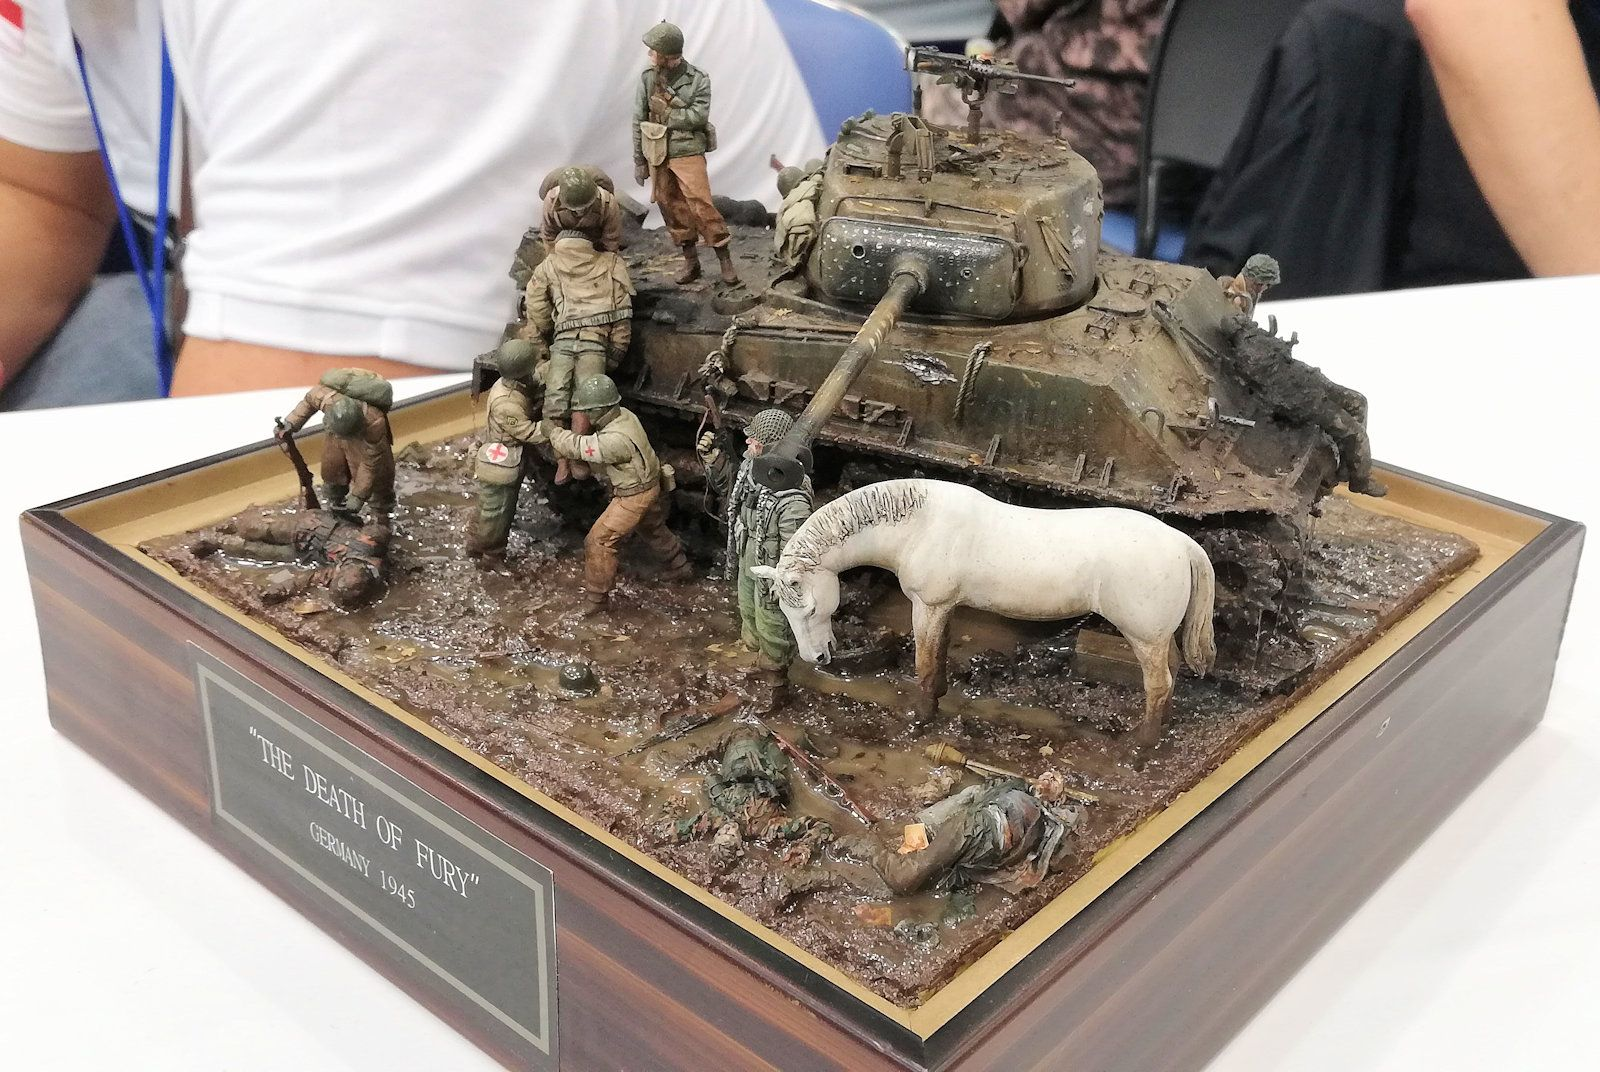 Pin by Paul Millward on Model Soldiers   Military diorama